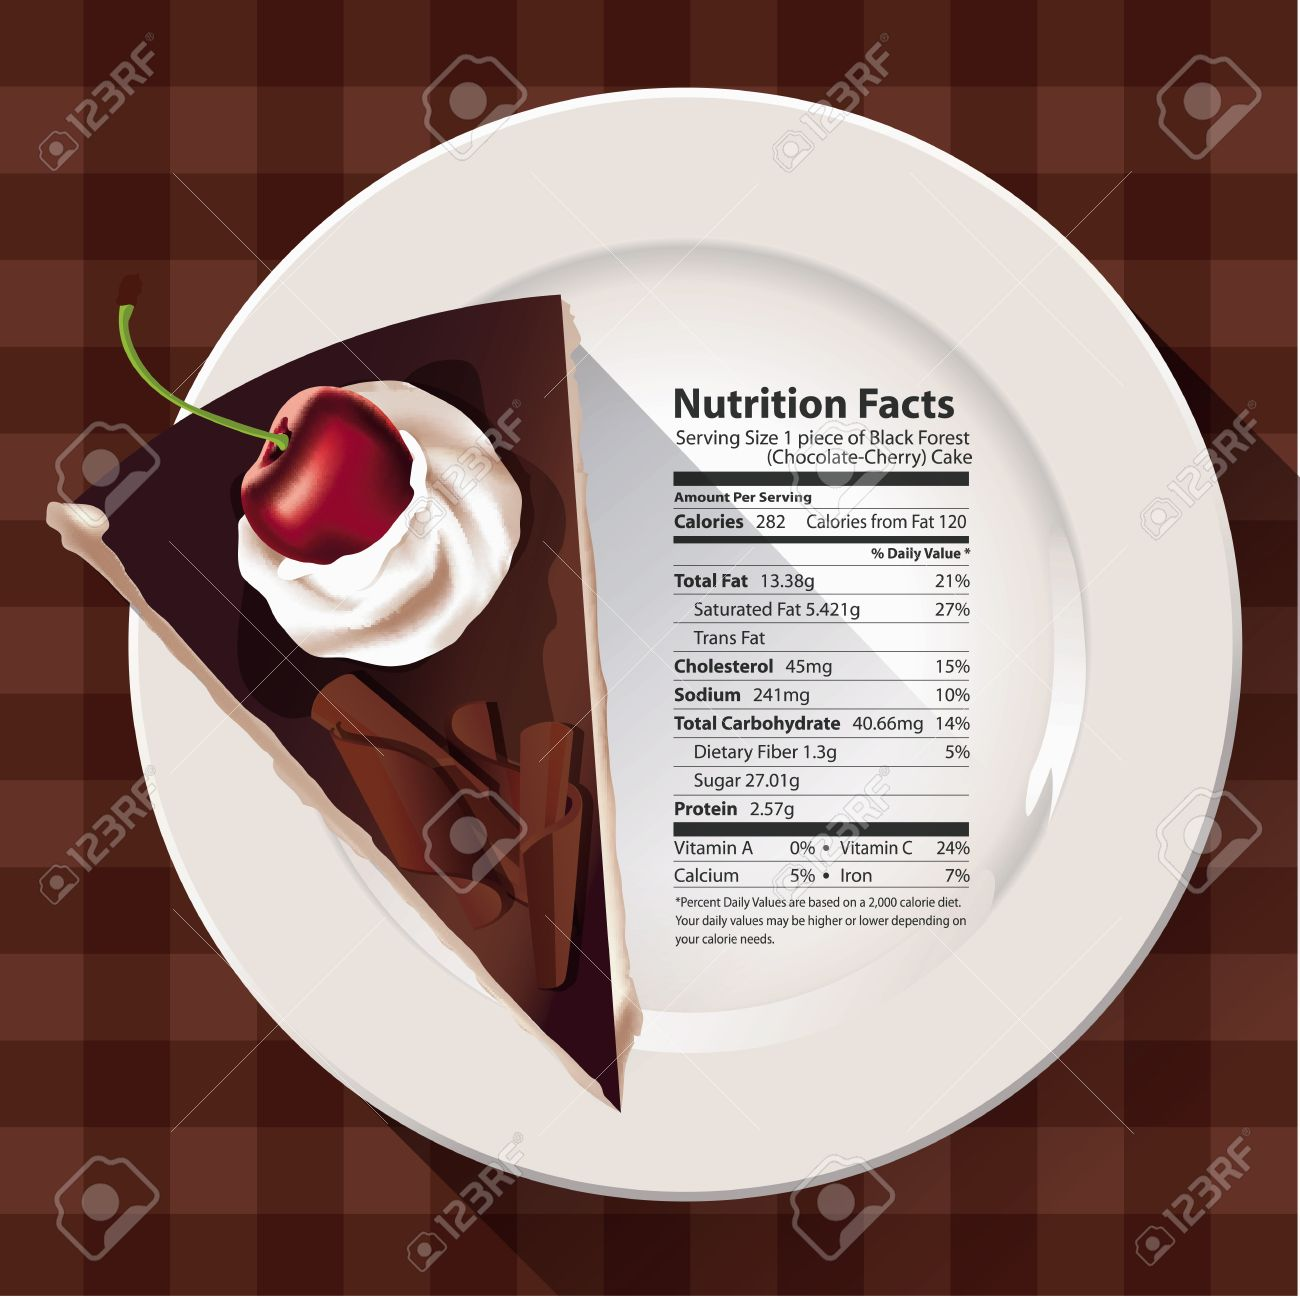 Vector Of Nutrition Facts Of Chocolate Cake With Cherry Royalty ...